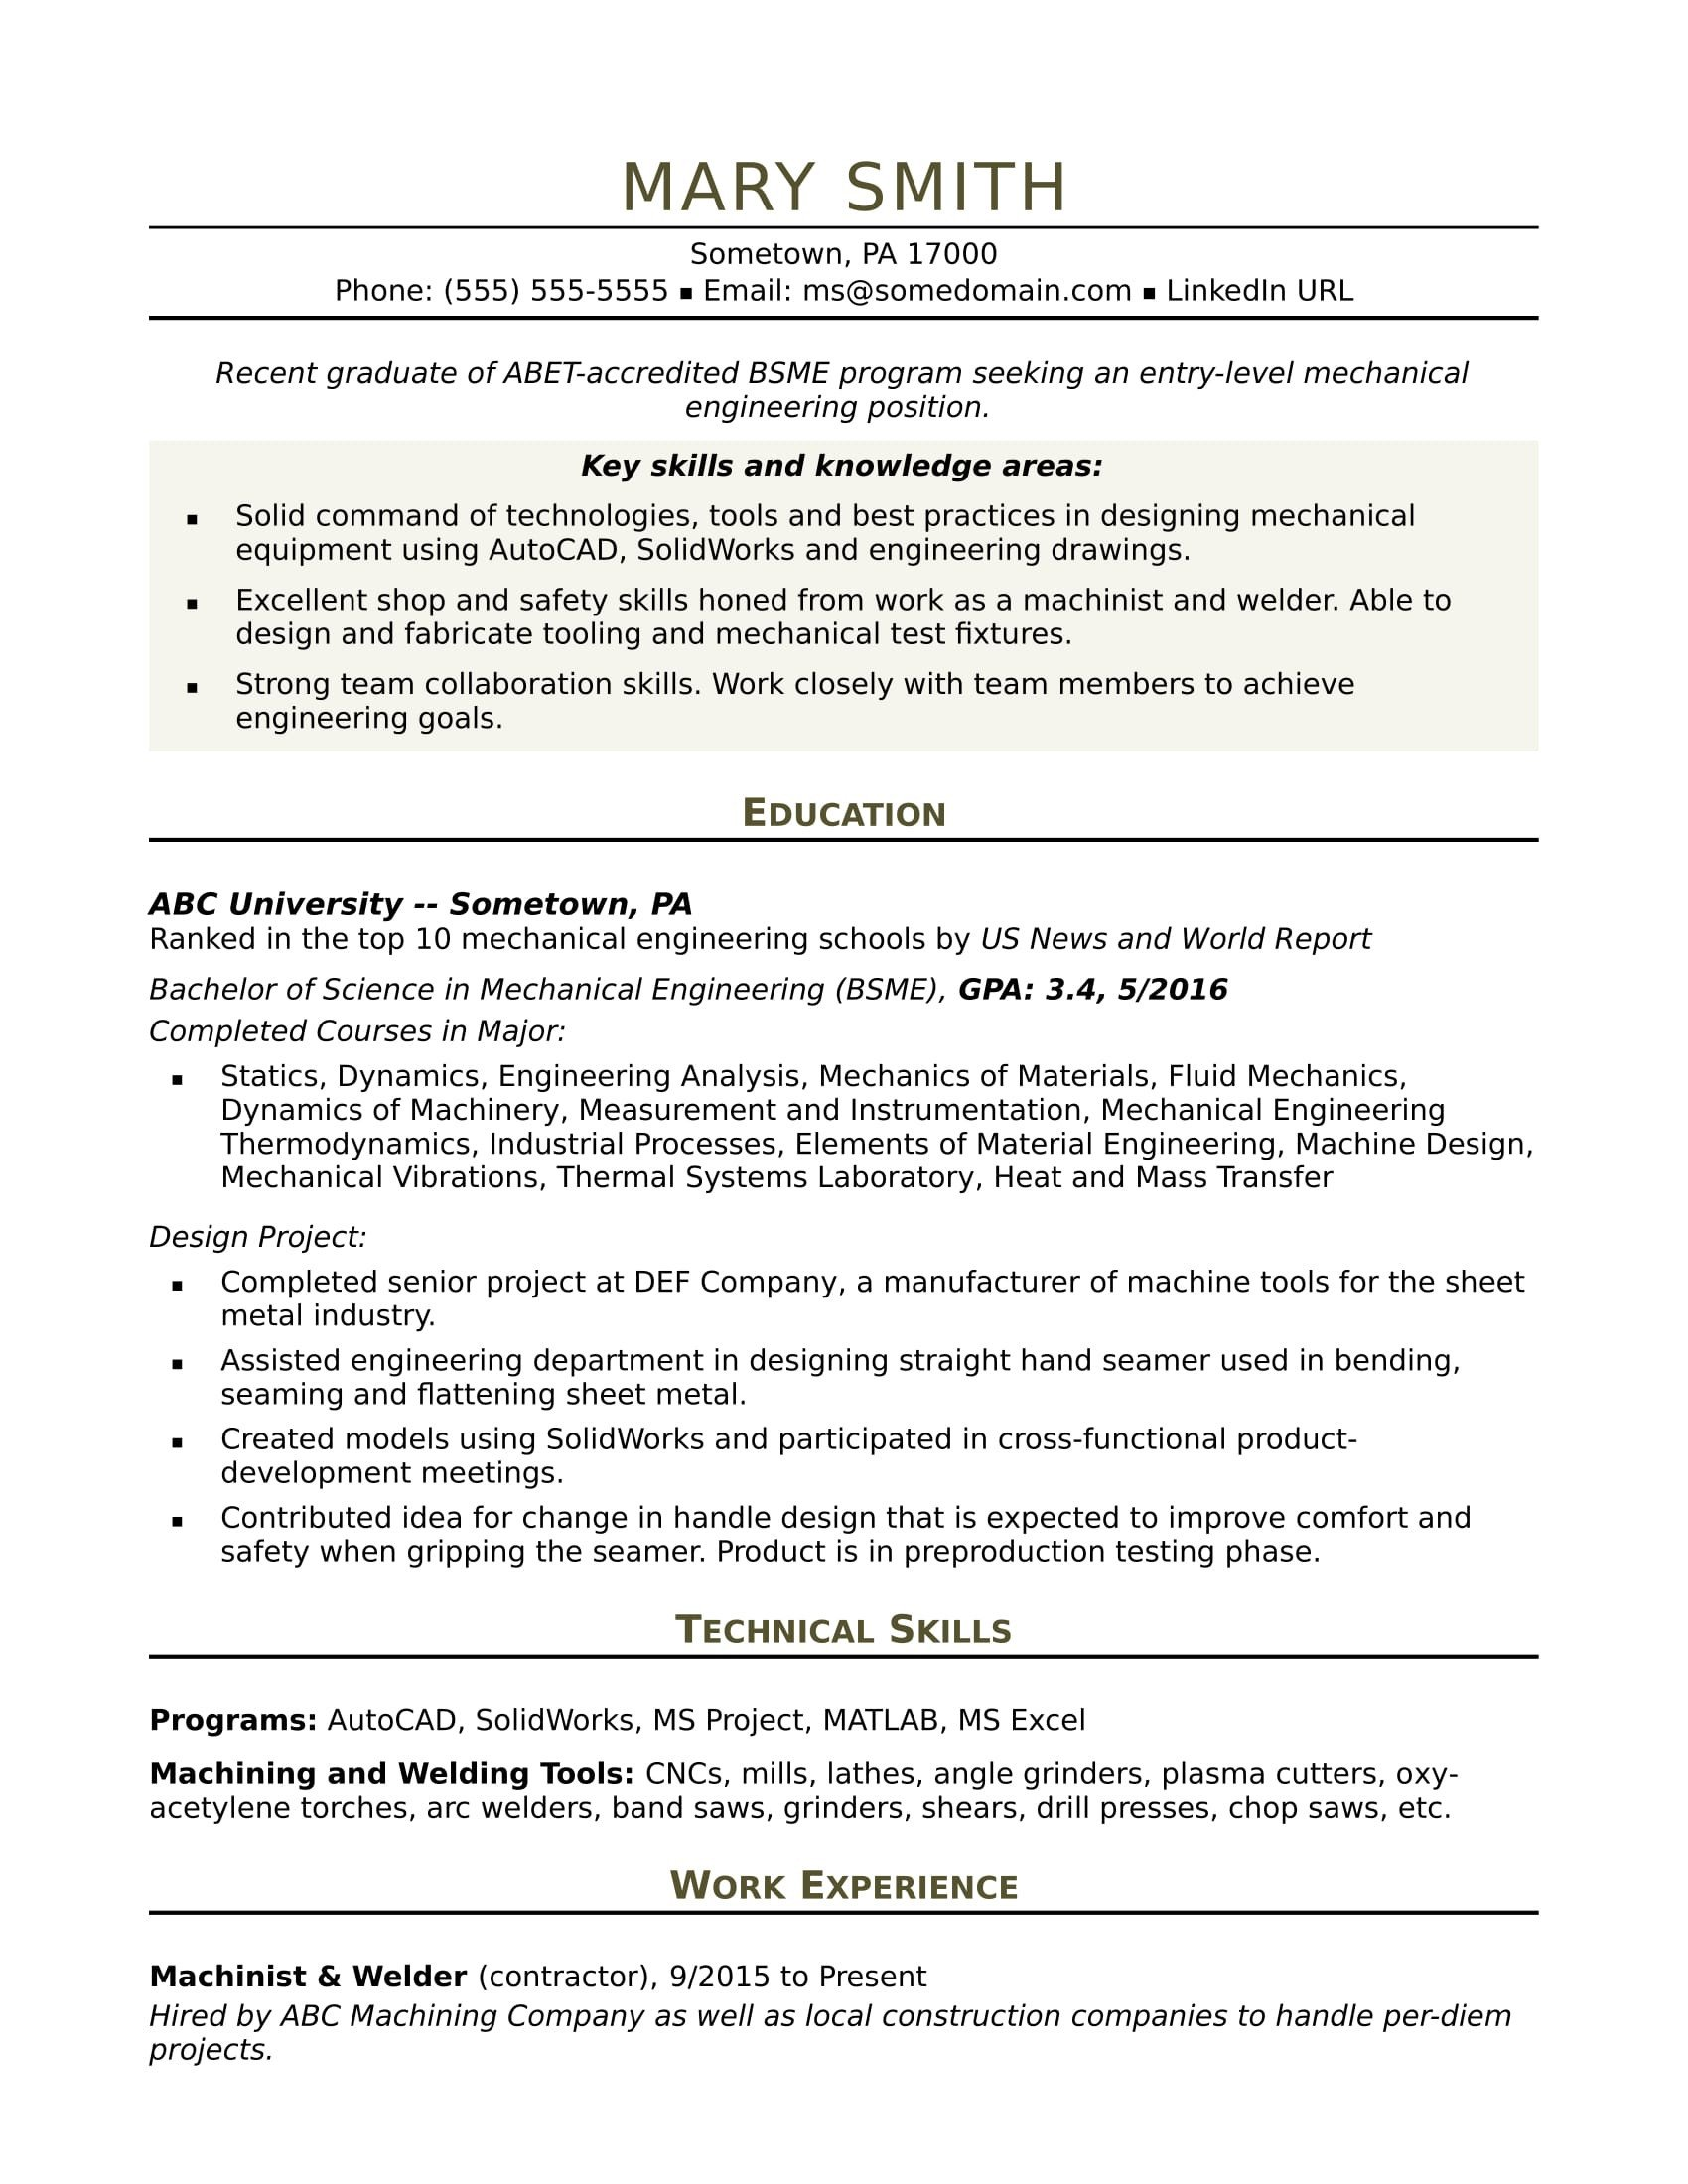 Mechanical Engineer Resume Template Sample Resume for An Entry Level Mechanical Engineer